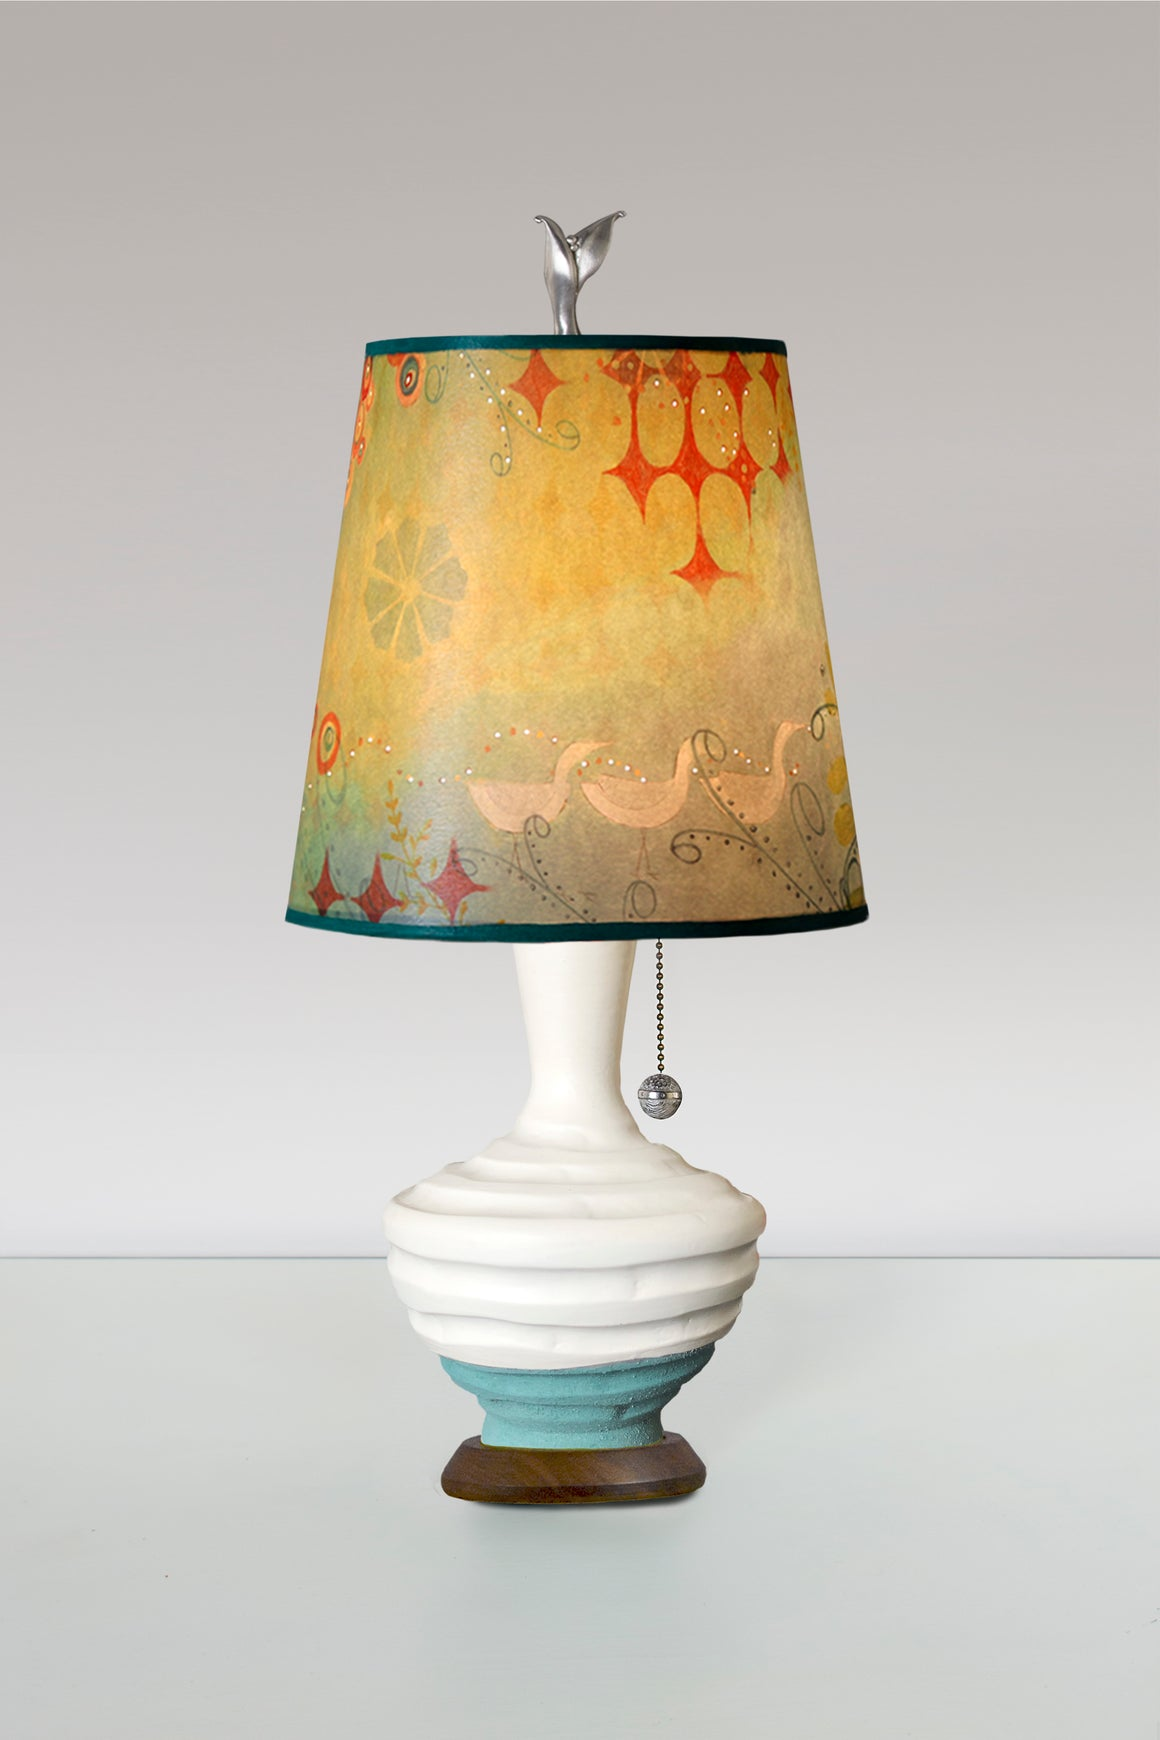 Turquoise and White Ceramic Table Lamp with Small Drum Shade in Dream Bird